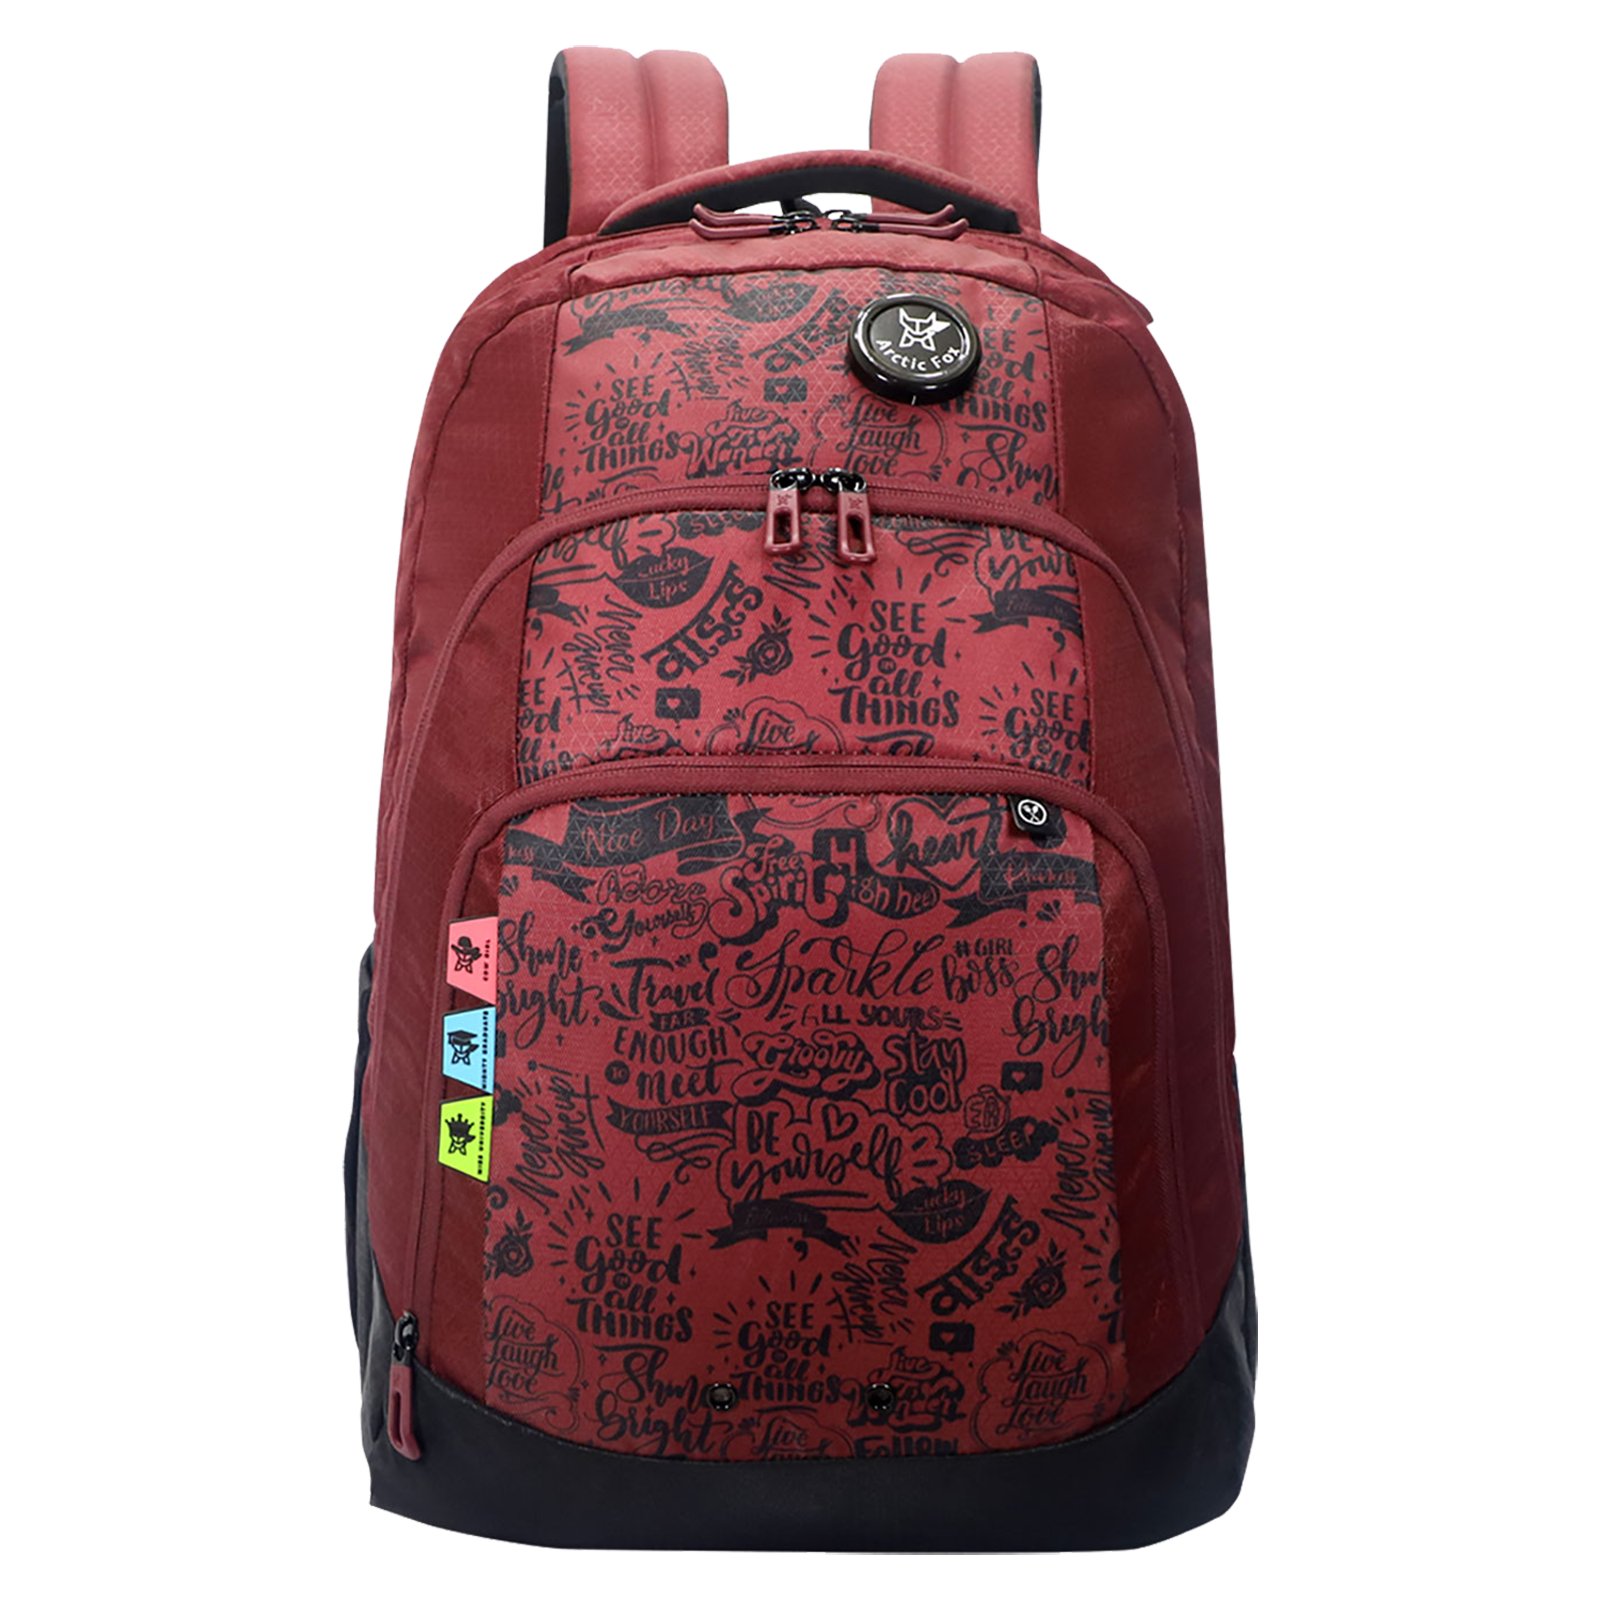 Arctic Fox Doodle 44 Litres PU Coated Polyester Backpack (3 Spacious Compartments, FTEBPKTPOWZ083044, Tawny Port)_1